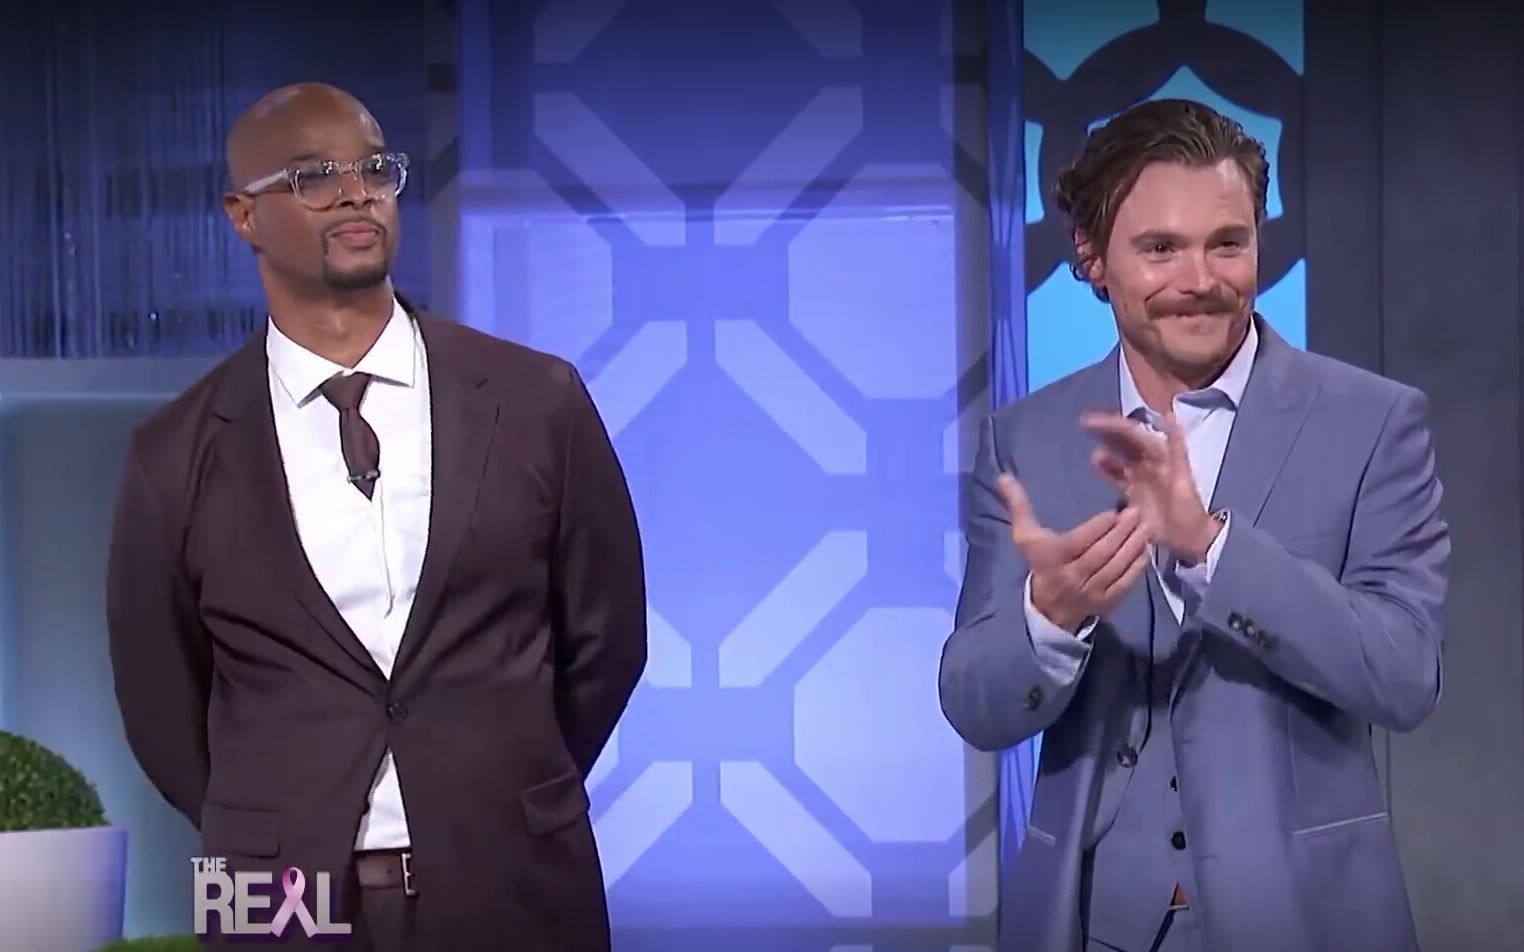 【致命武器lethal weapon】【游戏】Clayne Crawford & Damon Wayans Play 'Lethally Legit